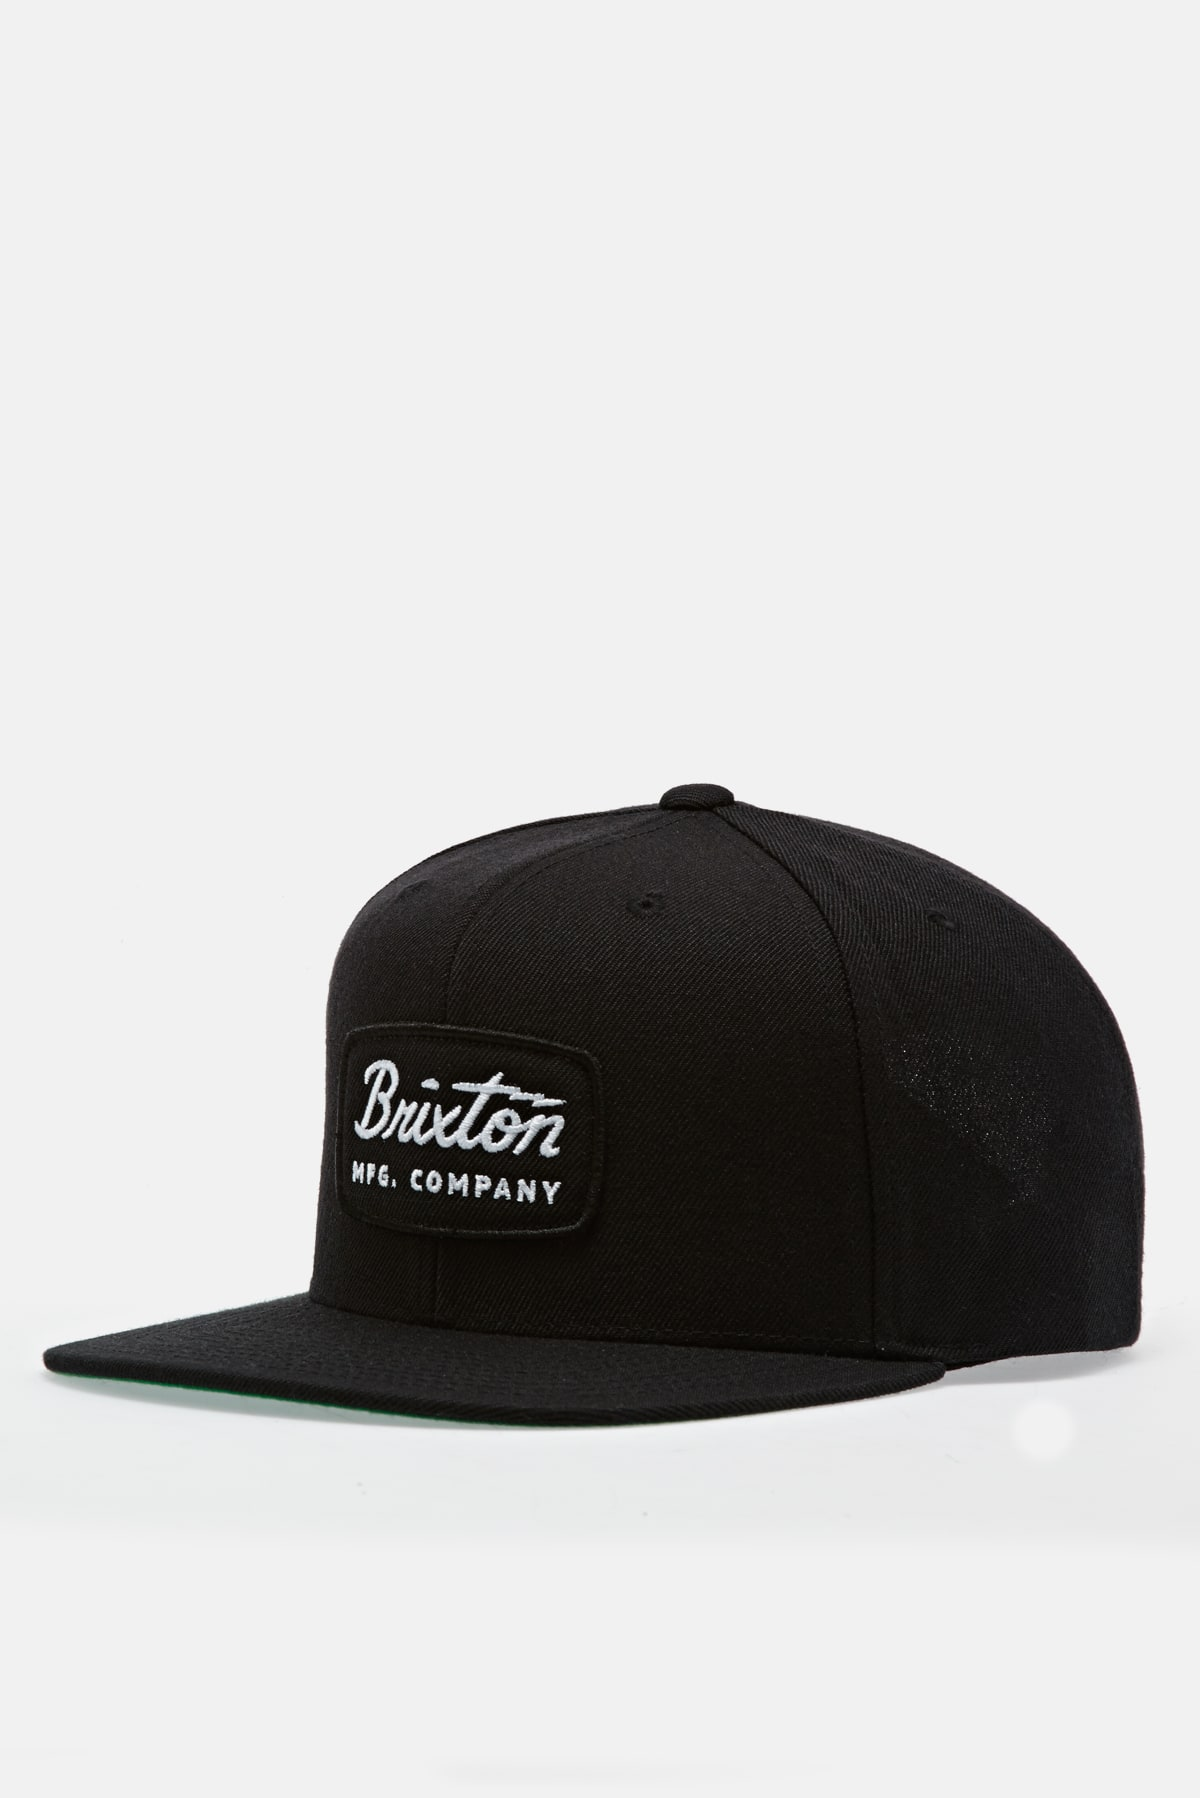 ecab3326589 Brixton Jolt Snapback Cap available from Priory